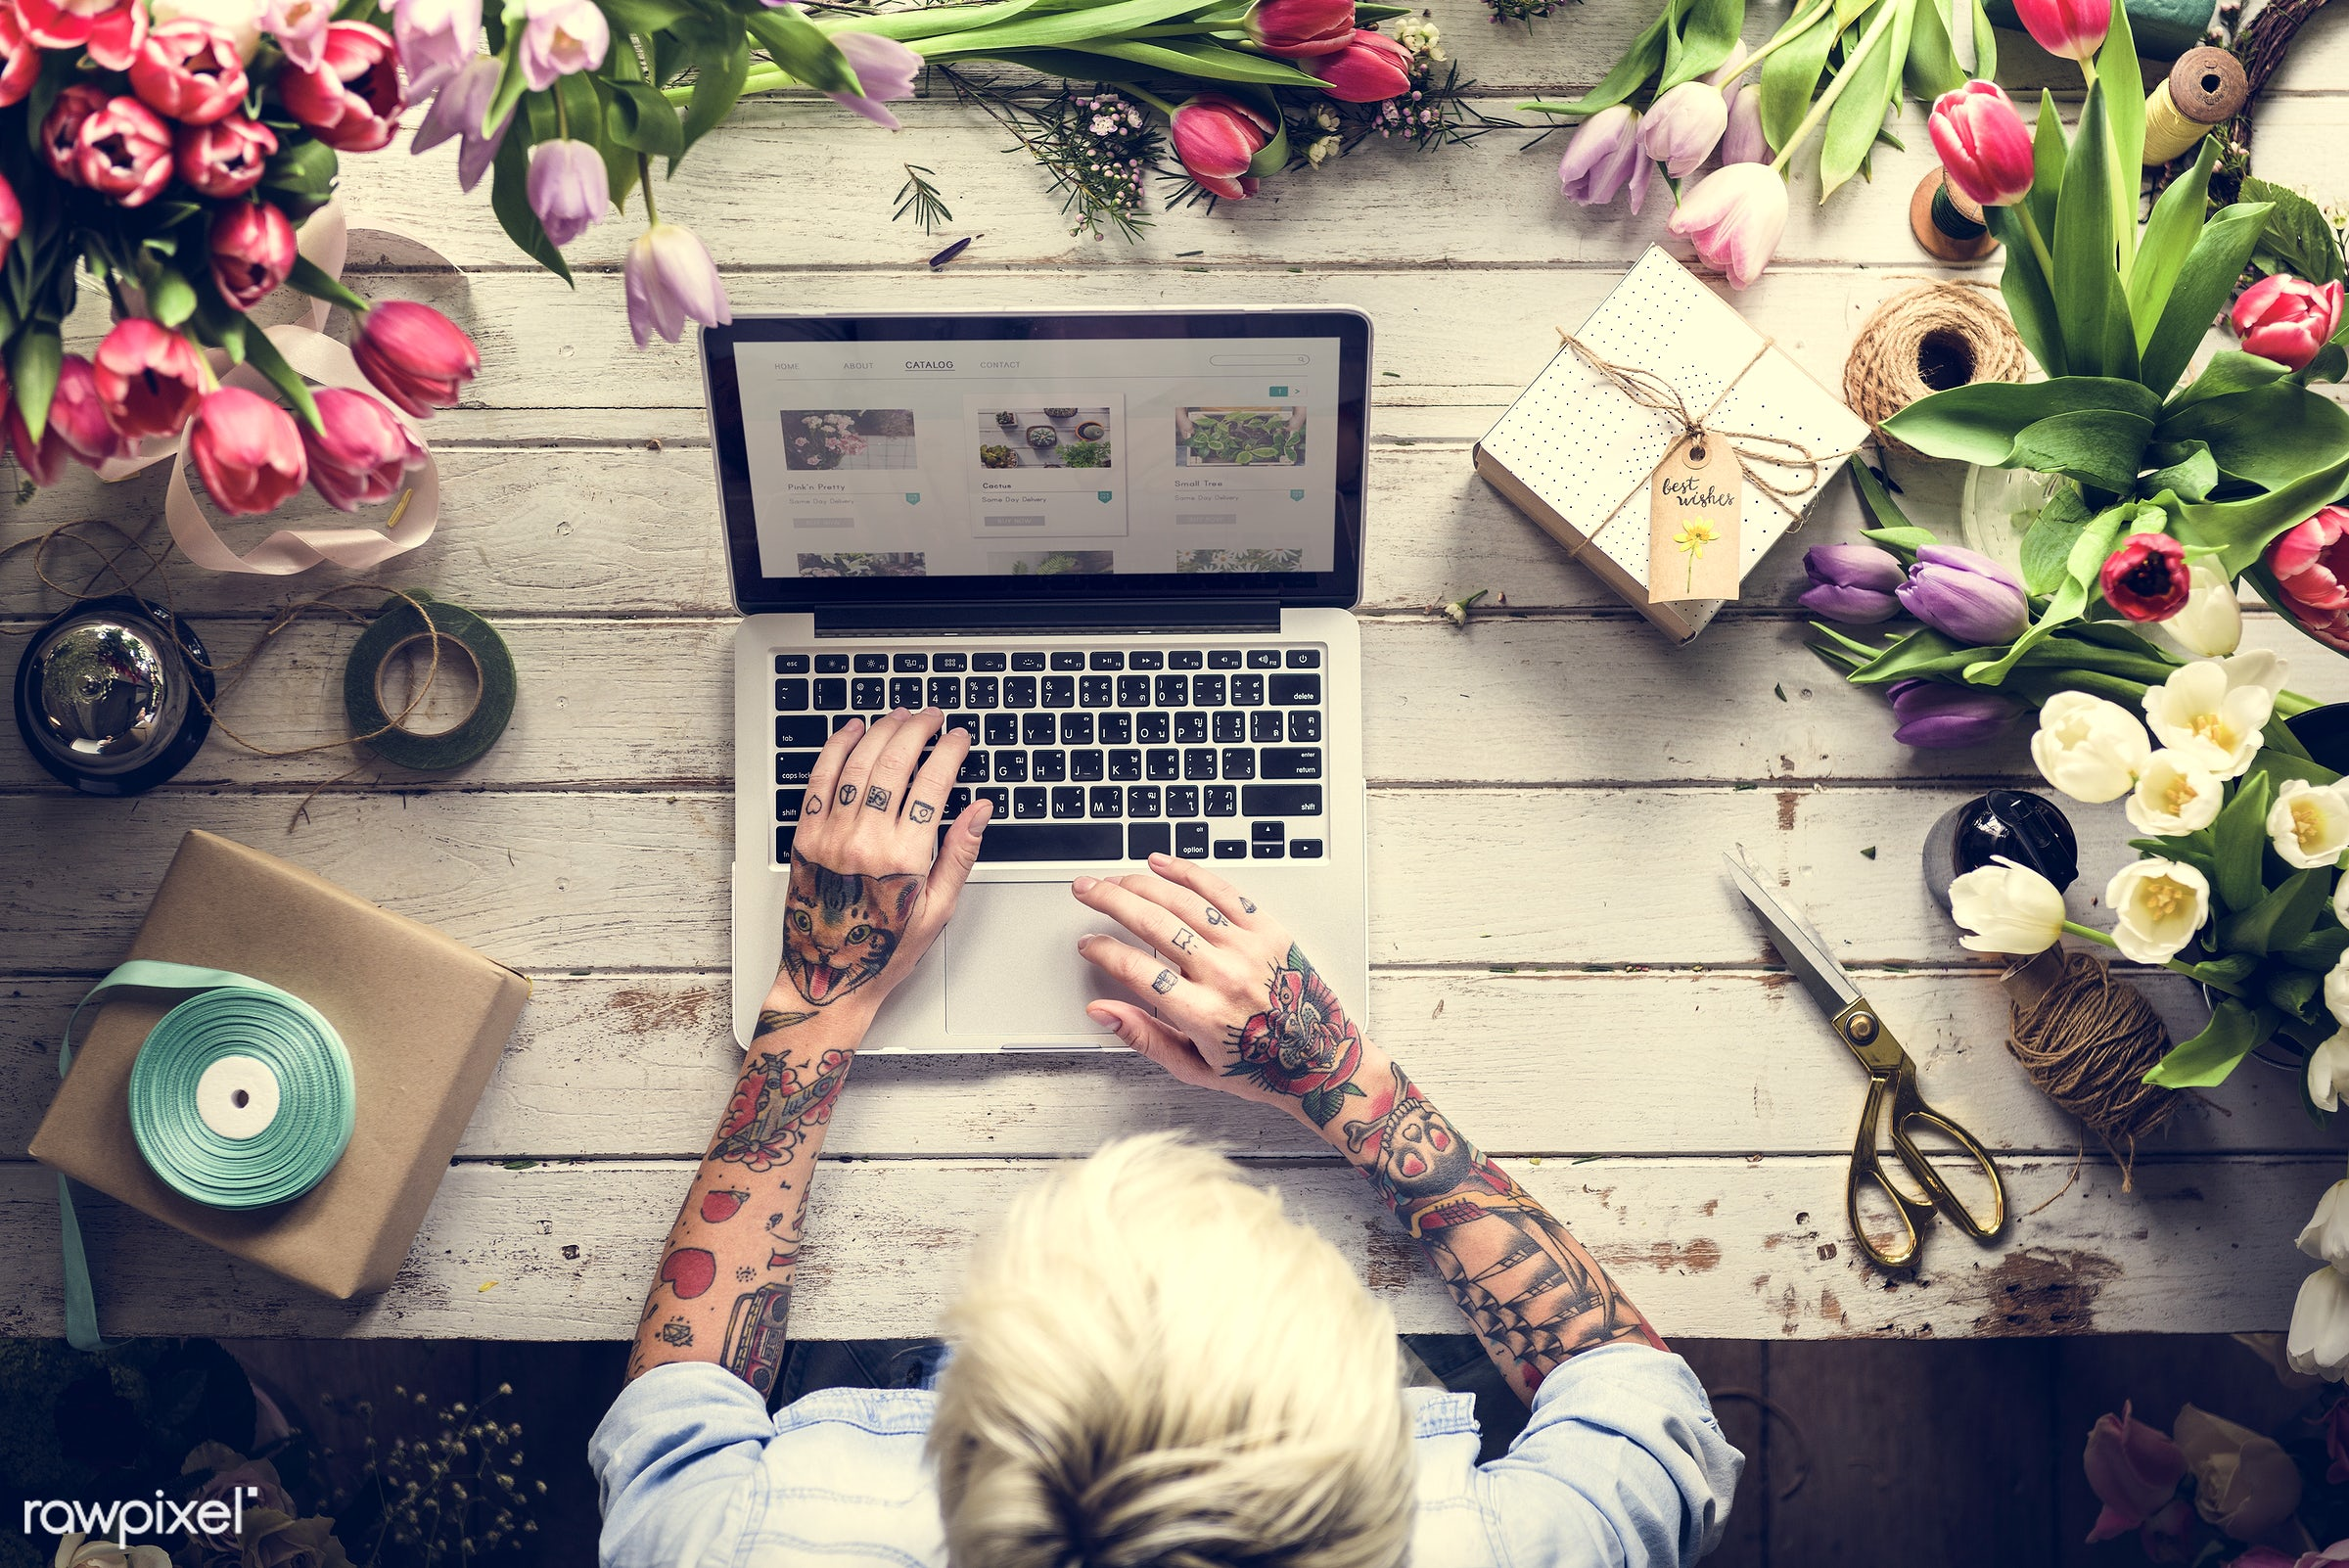 bouquet, using, craft, person, store, handicraft, people, self-employed, woman, laptop, tattoo, flower, searching, art,...